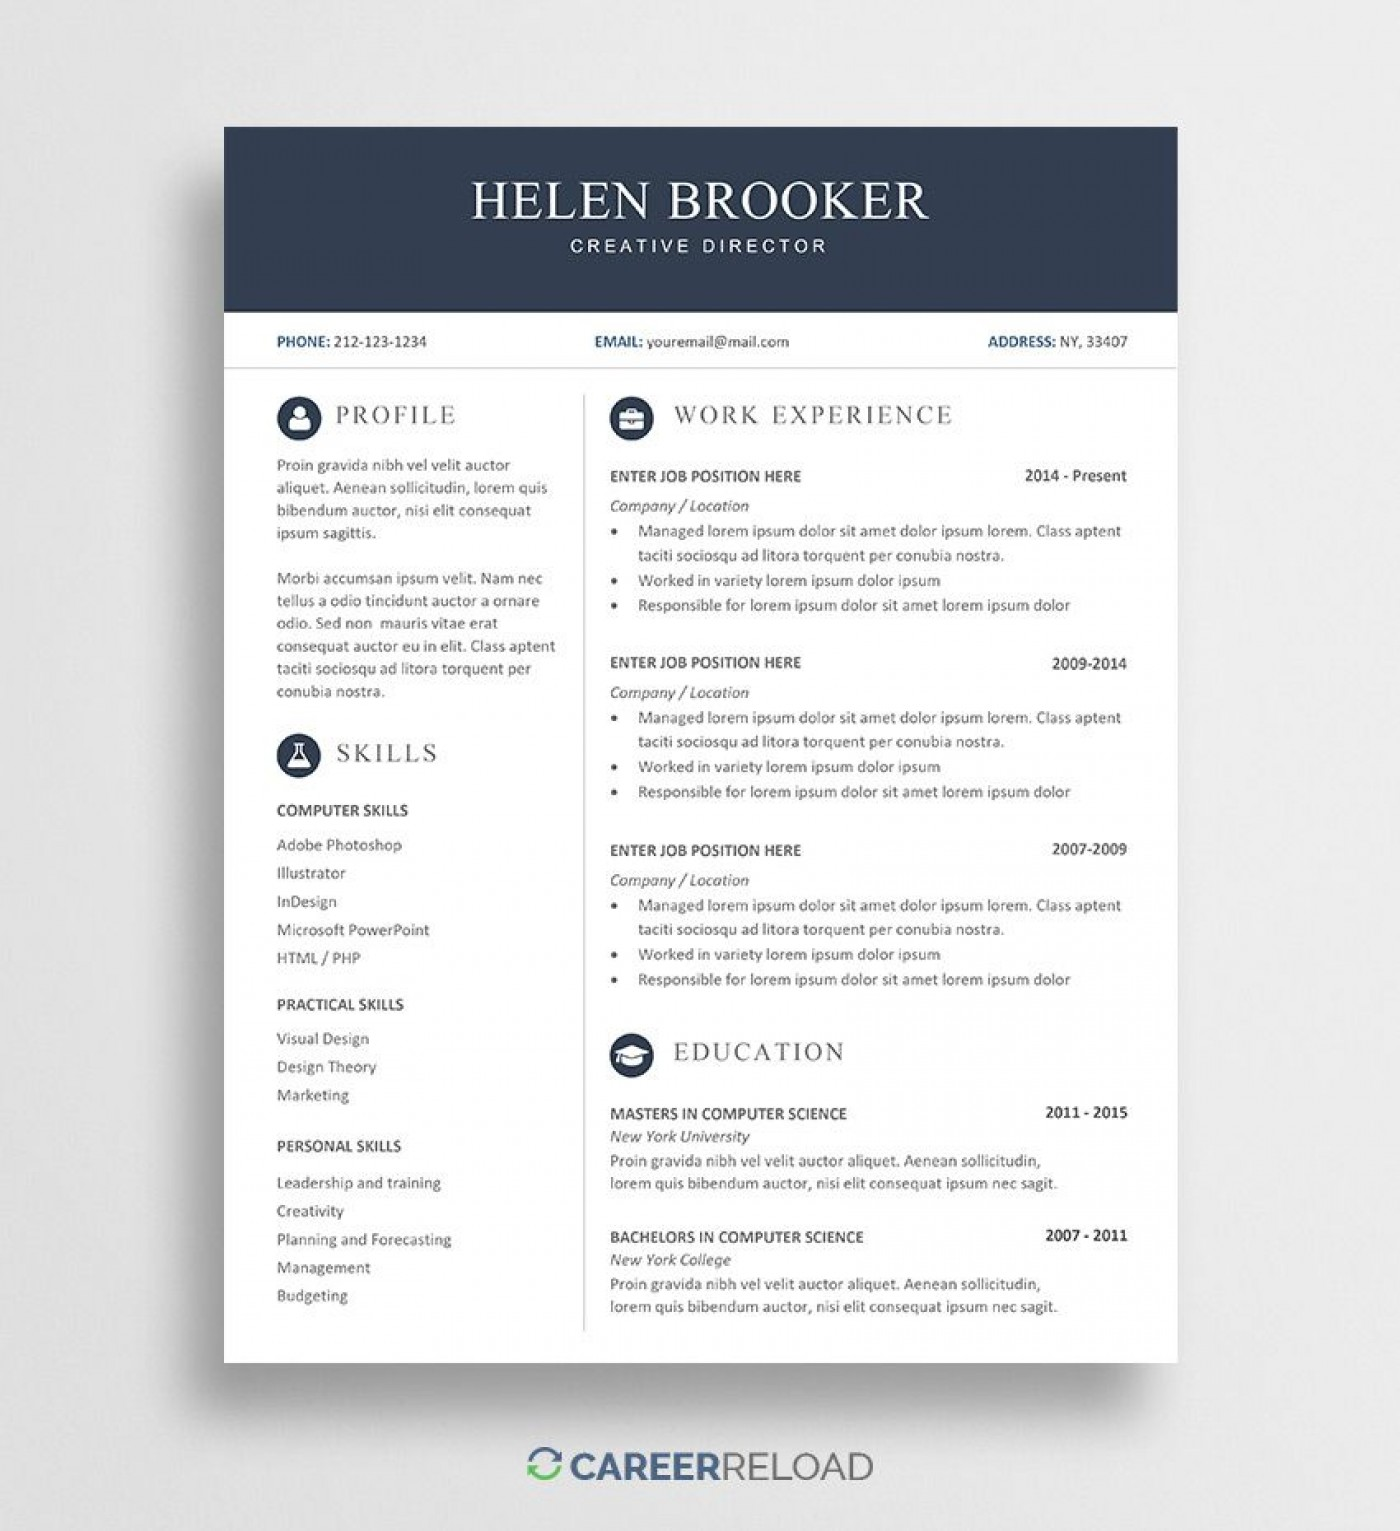 005 Rare Resume Template M Word Free High Resolution  Modern Microsoft Download 2010 Cv With Picture1400